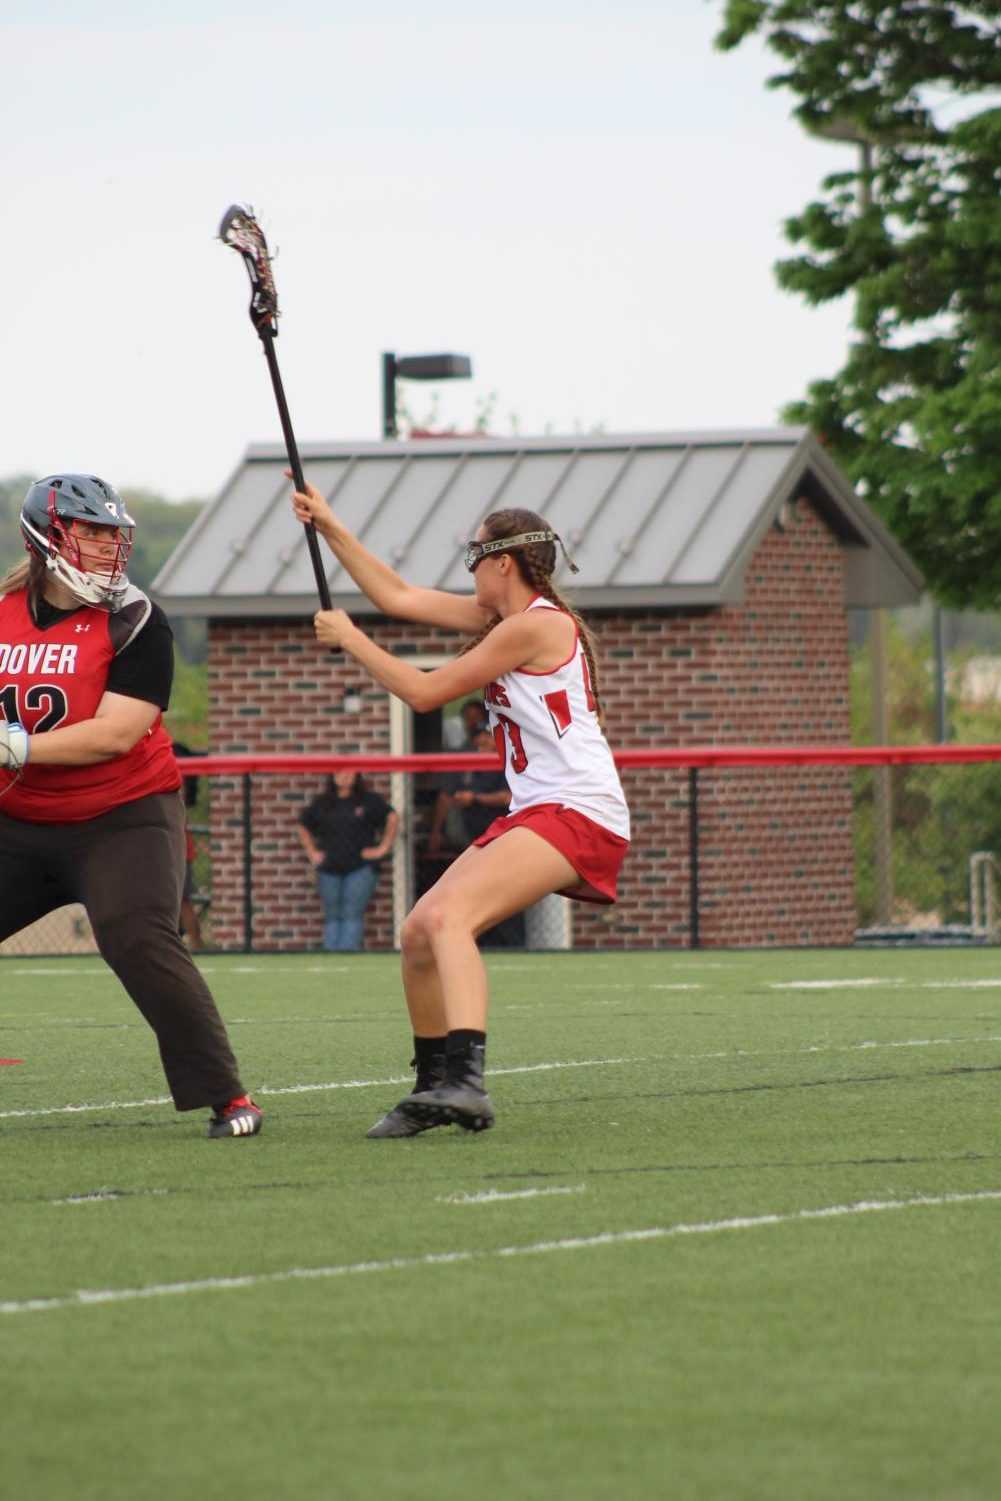 Sophomore+Ariana+Prediger+closely+defends+the+Dover+goalie+attempting+to+clear+the+ball.+Prediger+holds+her+stick+high+to+intercept+any+throw+the+goalie+makes.+Photograph+by+Stephanie+Graffin